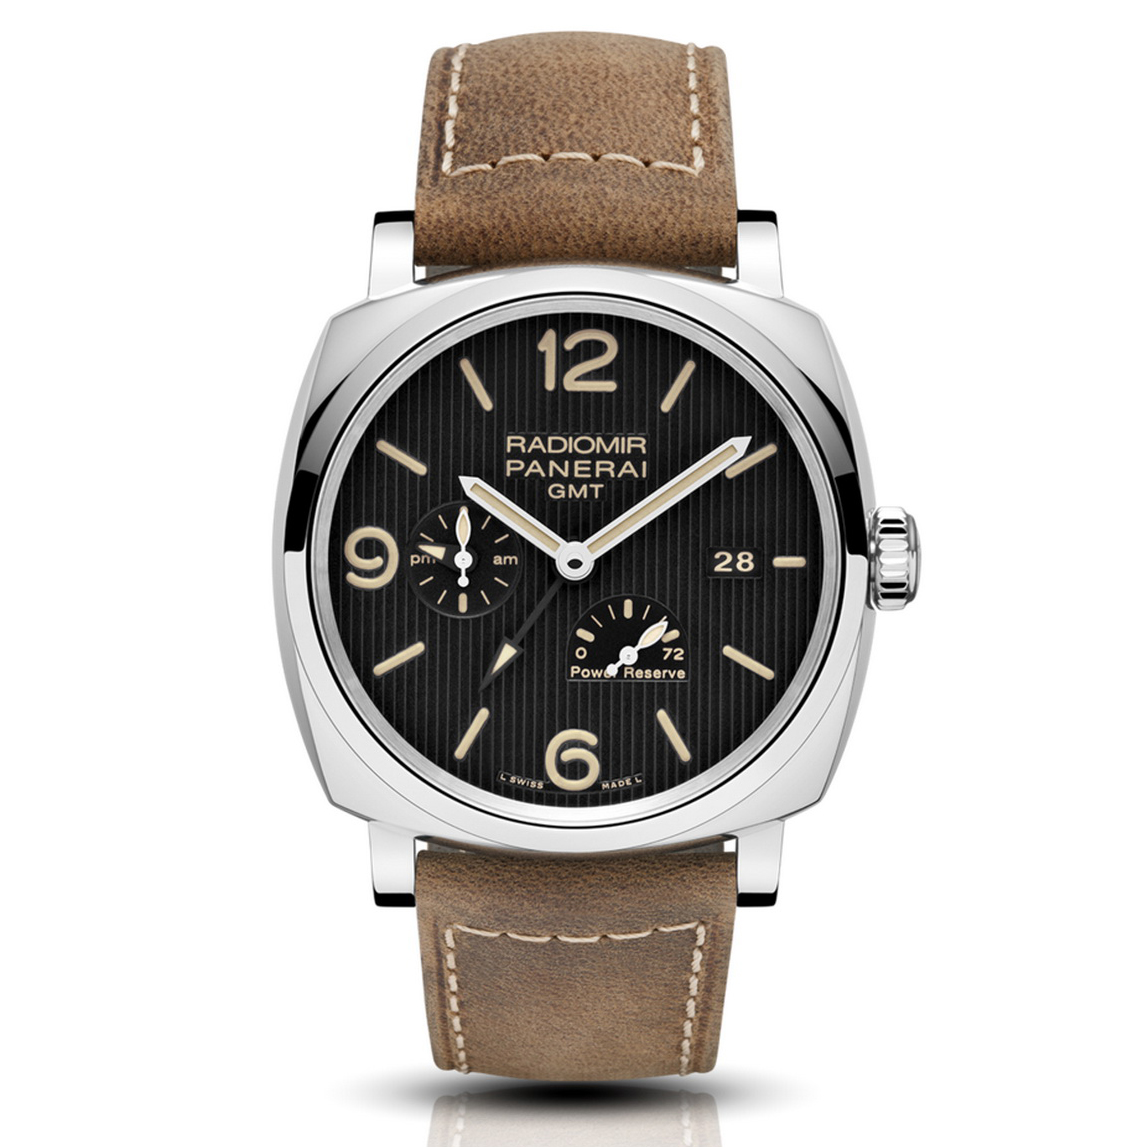 Radiomir 1940 3 Days GMT Power Reserve Automatic Acciaio PAM00658